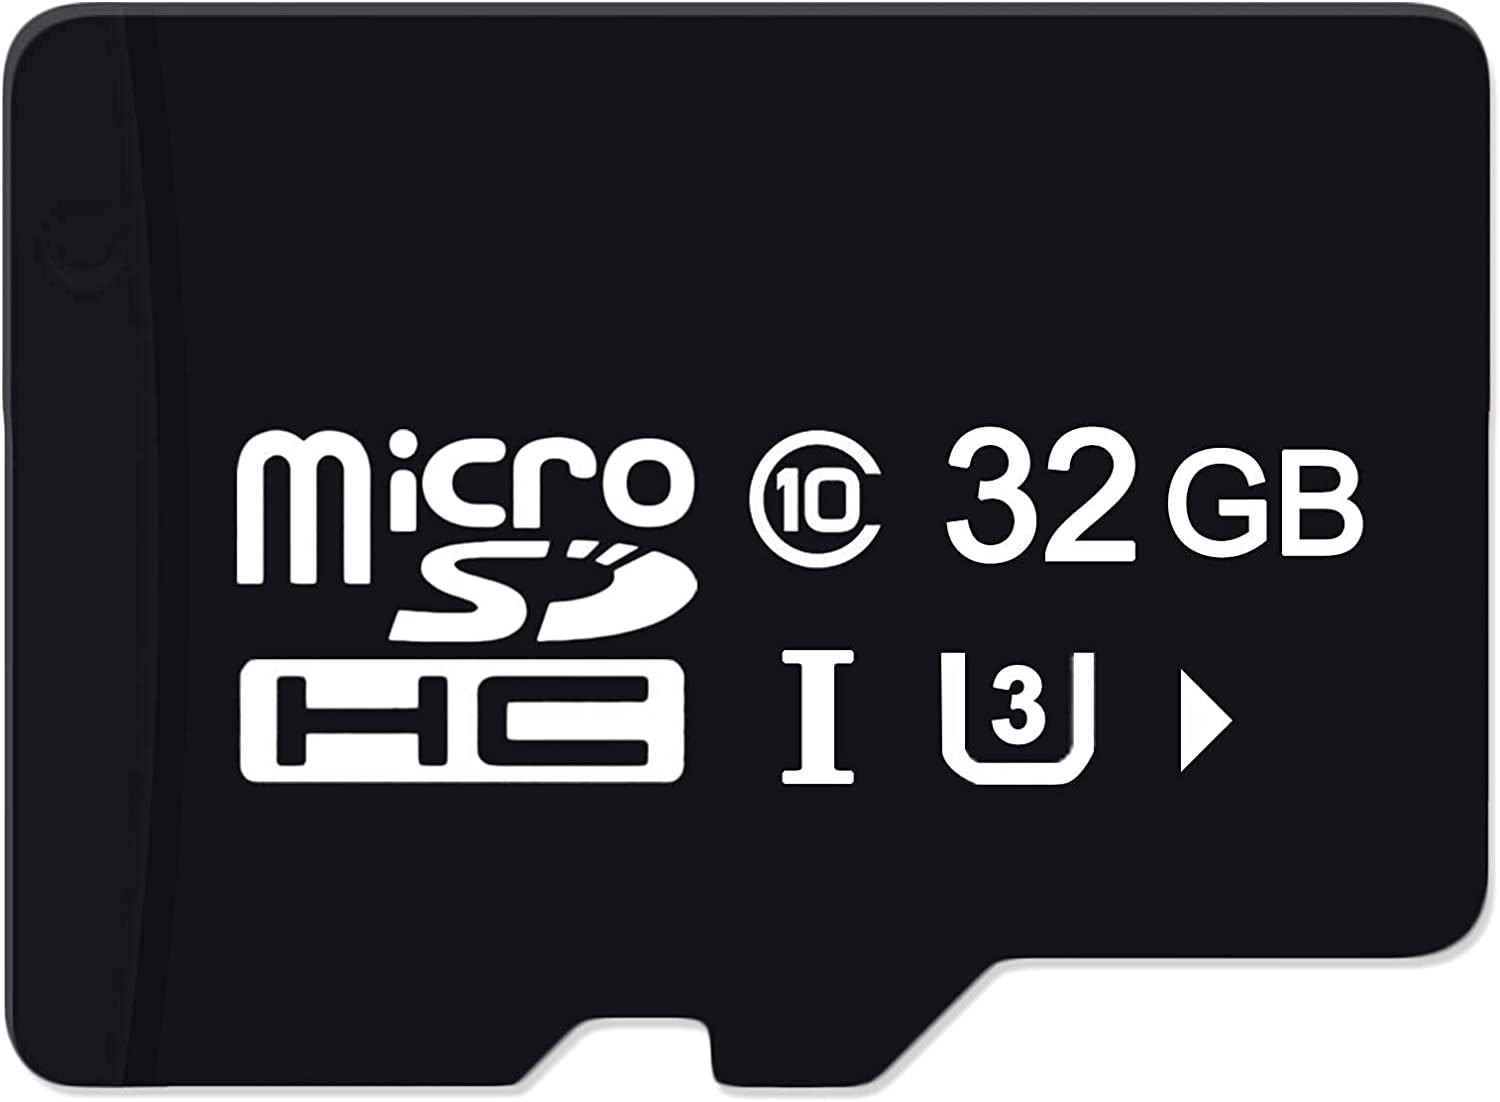 32GB High Speed Micro SD Card, UHS-I U3 C10 Micro SDHC Memory Card for Action Cameras, Dash Cam, Surveillance Cameras, Hidden Cameras and Spy Cameras